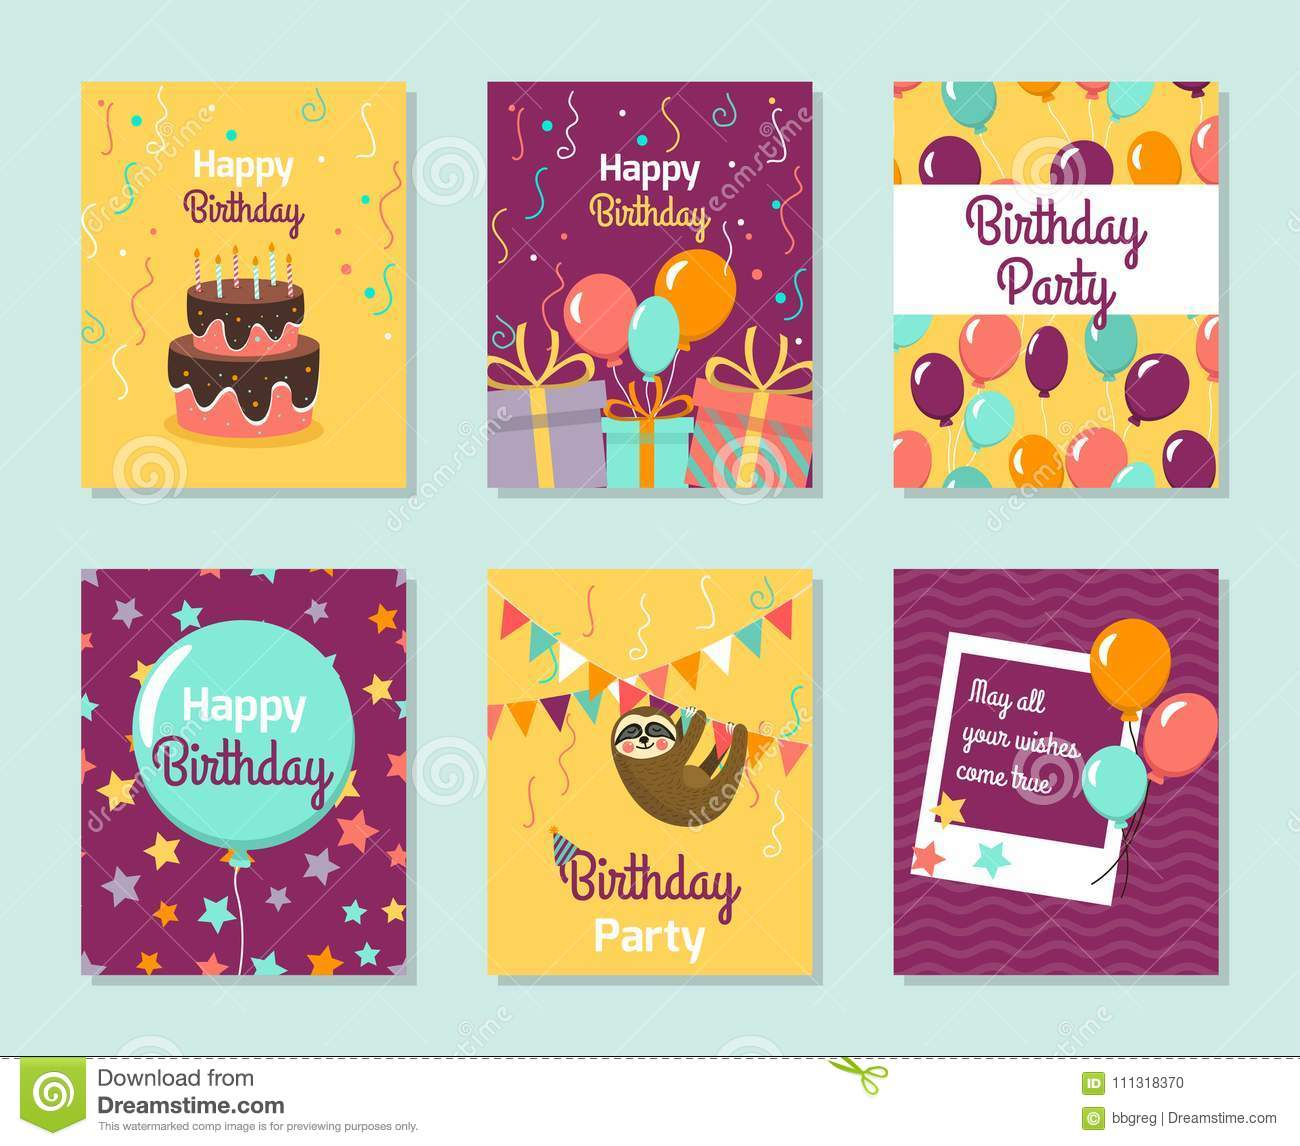 Happy Birthday Collection Greeting Templates Invitation Cards To